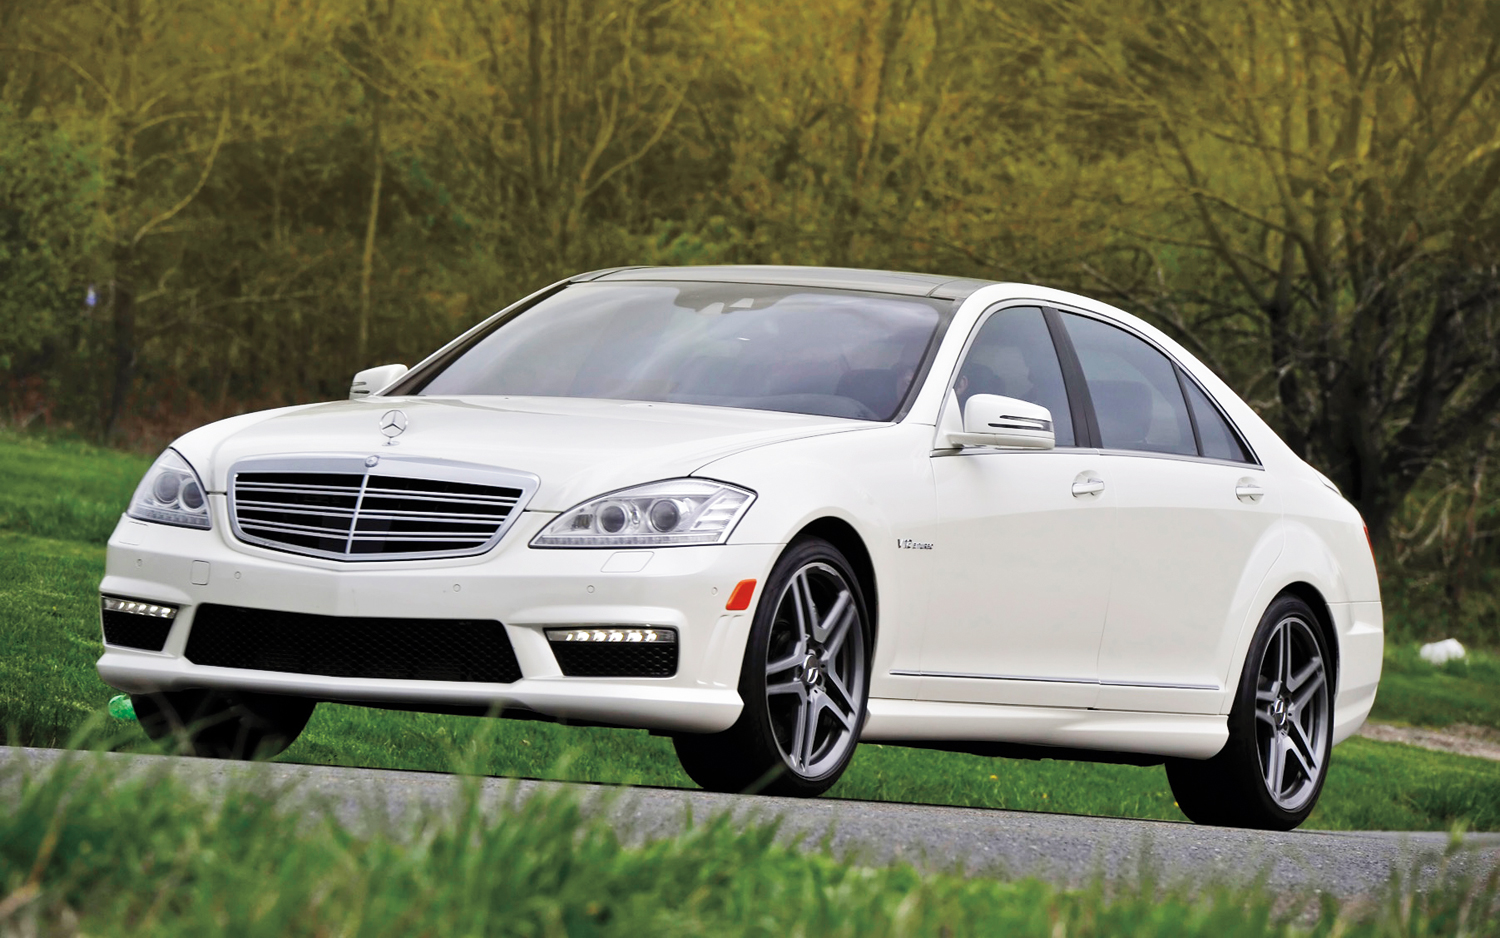 Service manual 2012 mercedes benz s class removing from a for Mercedes benz parts catalog online free download